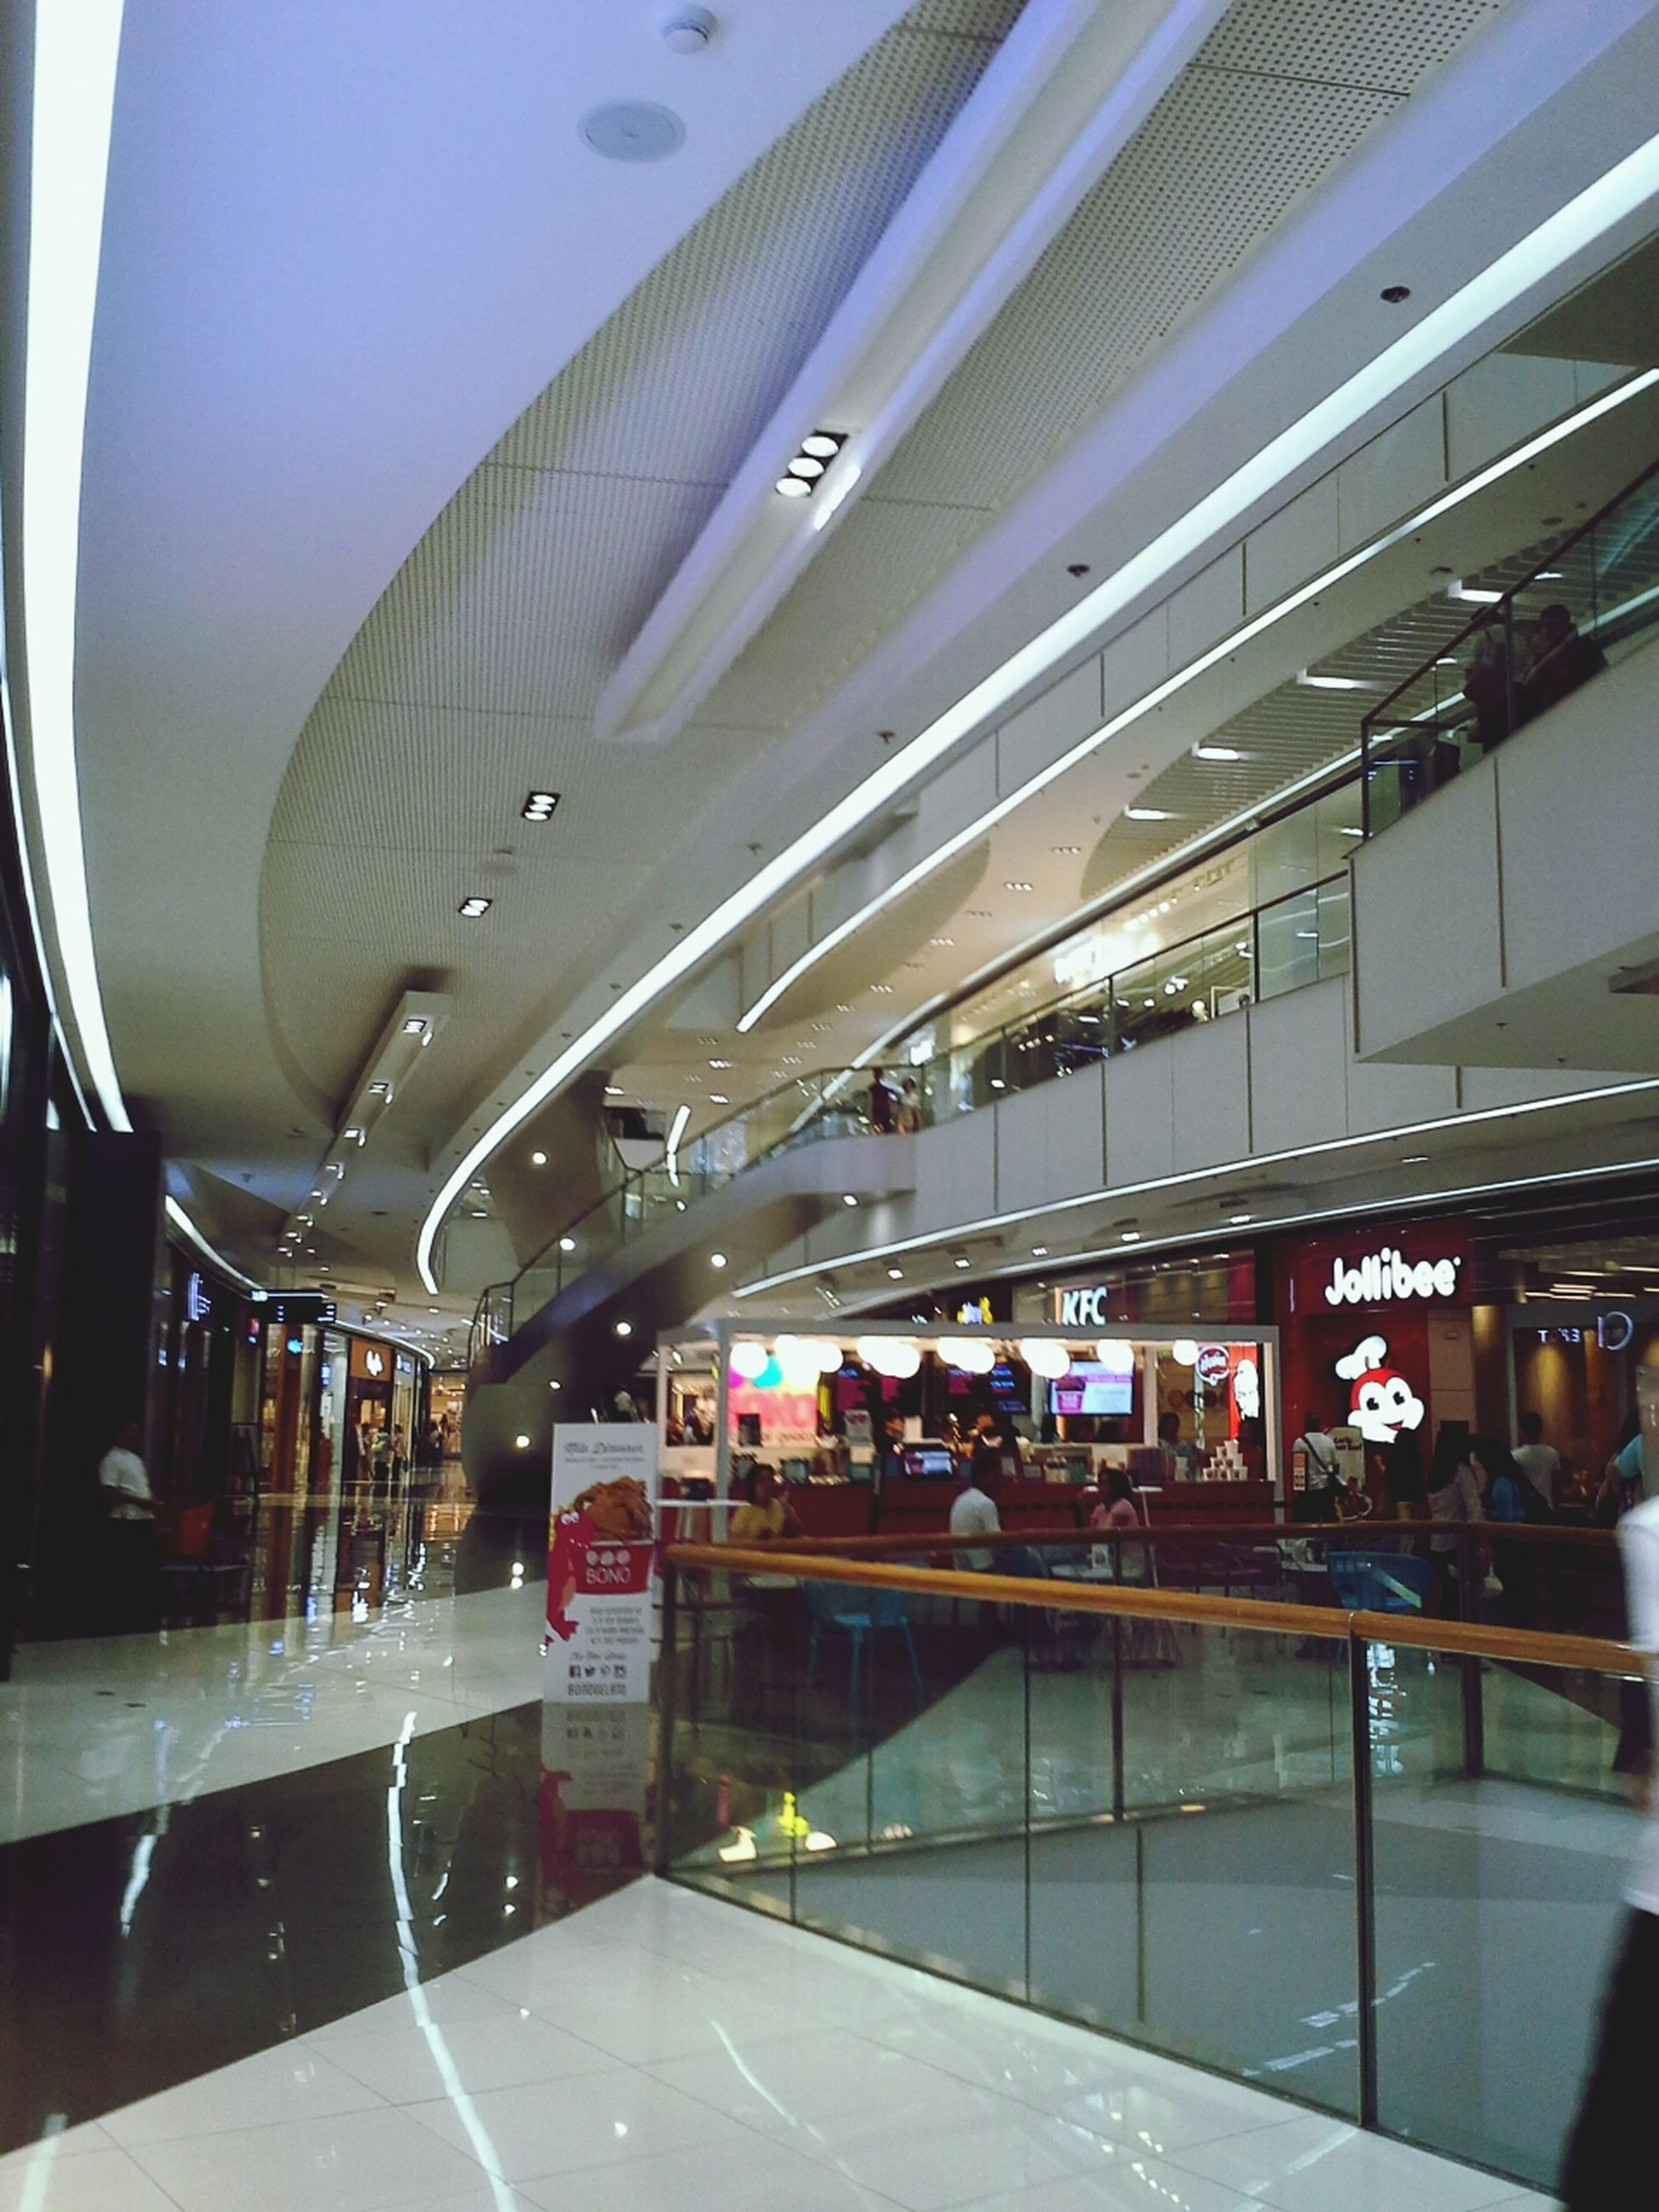 indoors, architecture, ceiling, transportation, built structure, illuminated, railroad station, subway station, modern, public transportation, travel, incidental people, interior, railroad station platform, architectural column, lighting equipment, rail transportation, transportation building - type of building, the way forward, subway